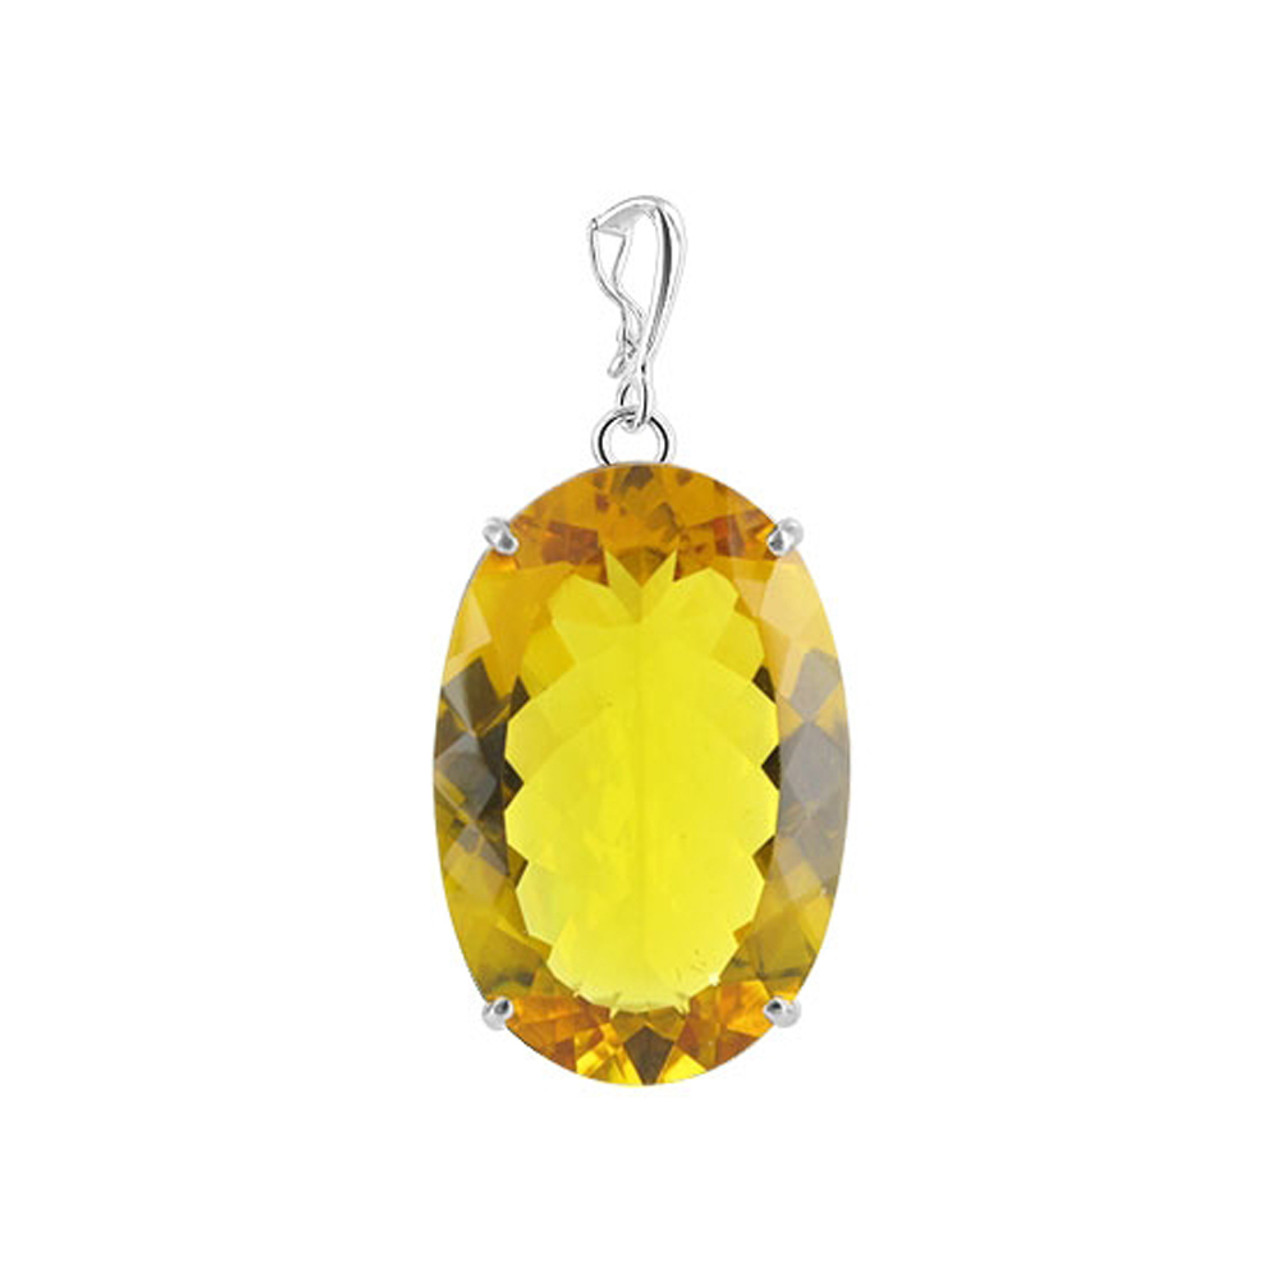 Oval Simulated Citrine Sterling Silver Pendant